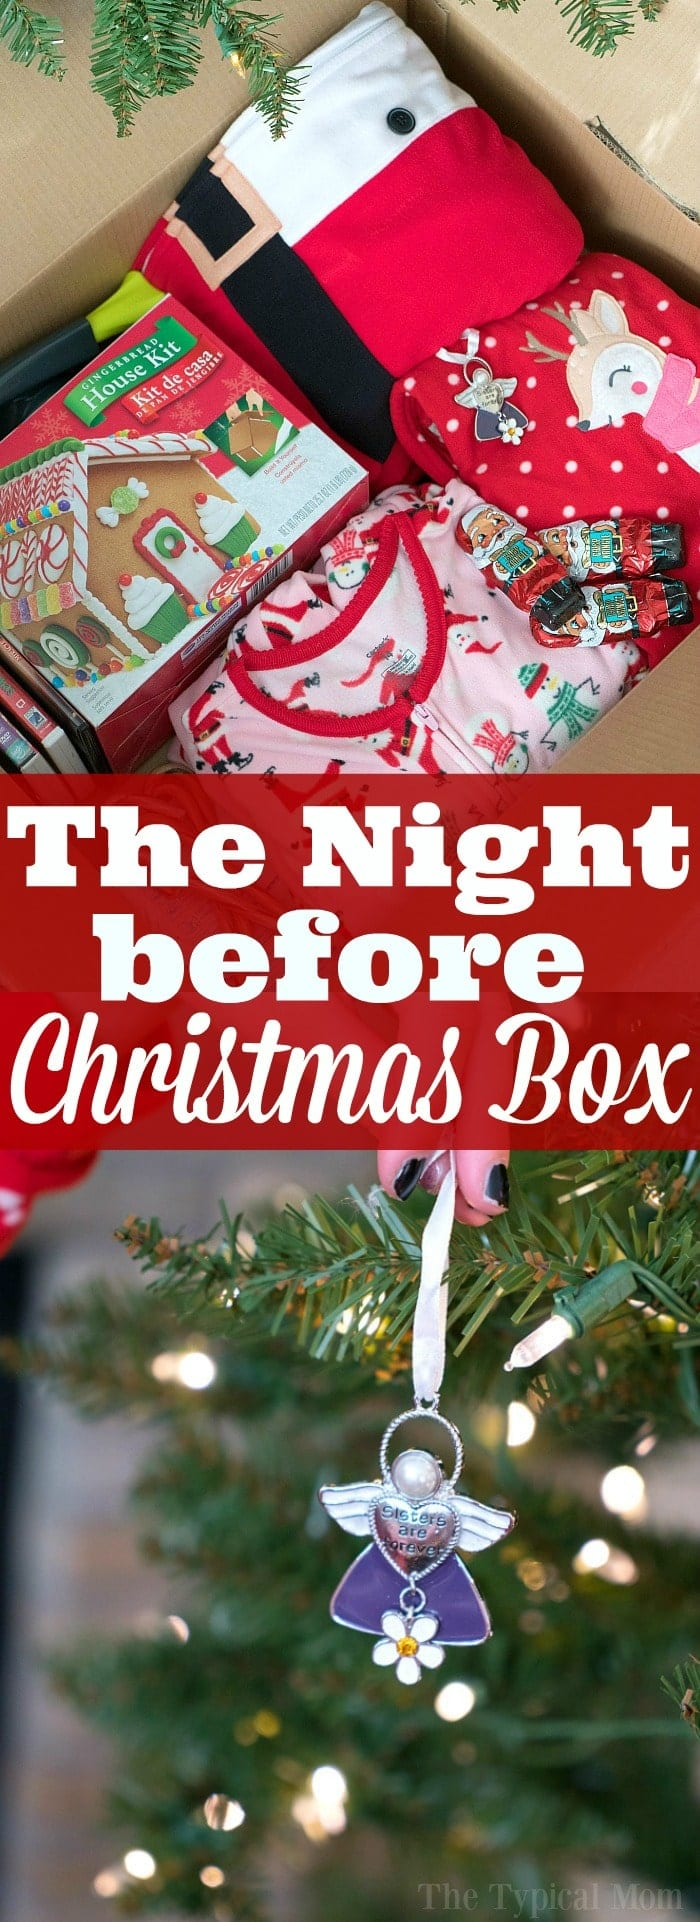 The night before Christmas box tradition is so much fun! Here's how you make one and why my kids look forward to it  every year no matter how old they are. #night #before #christmas #box #tradition #new #thetypicalmom #nightbeforechristmas